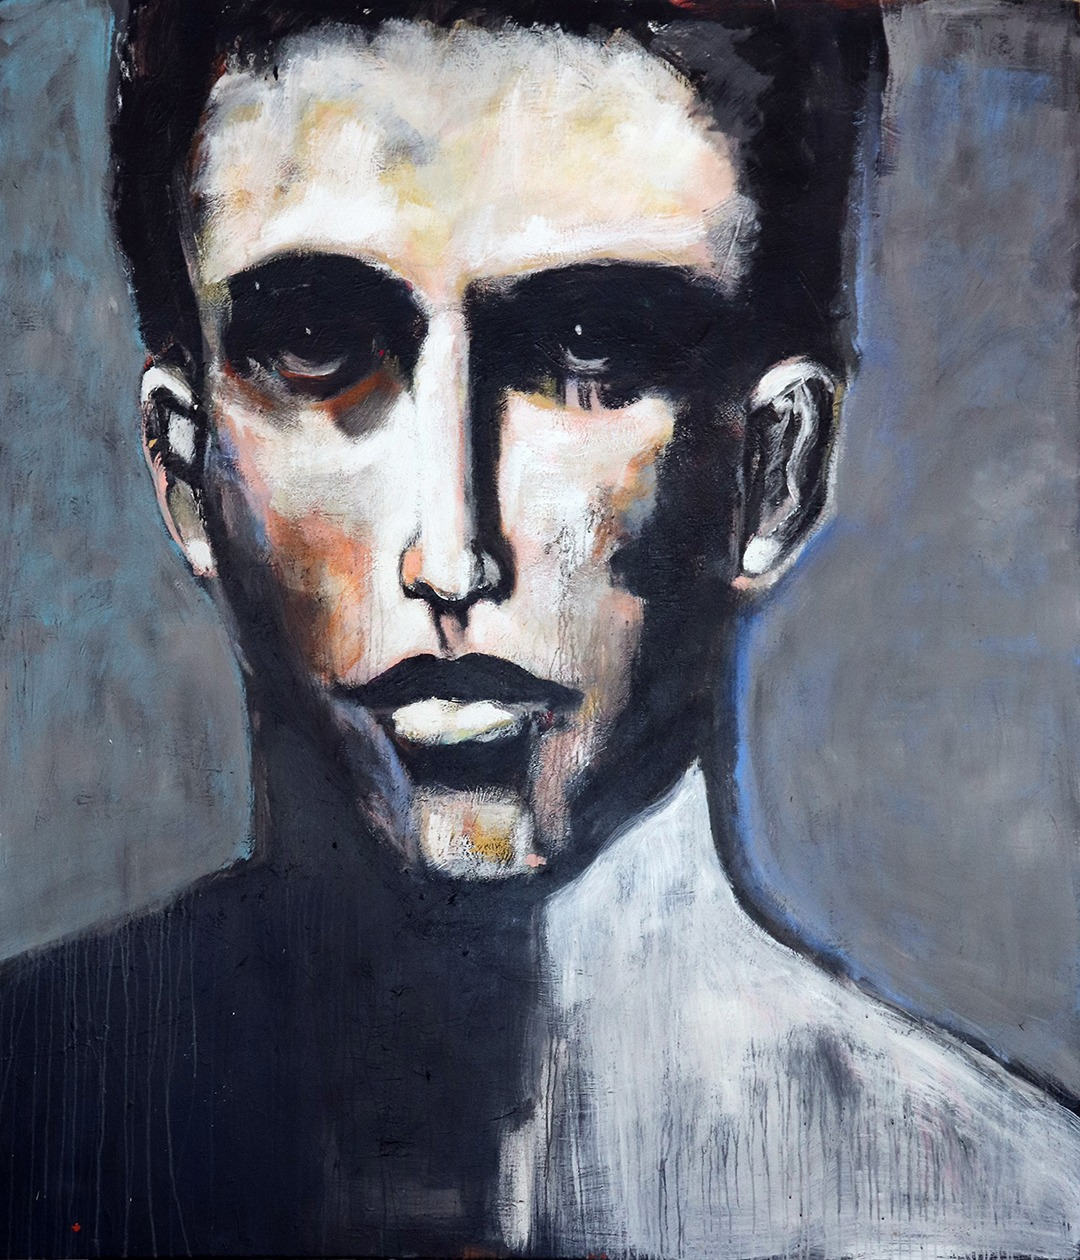 Man with White Face